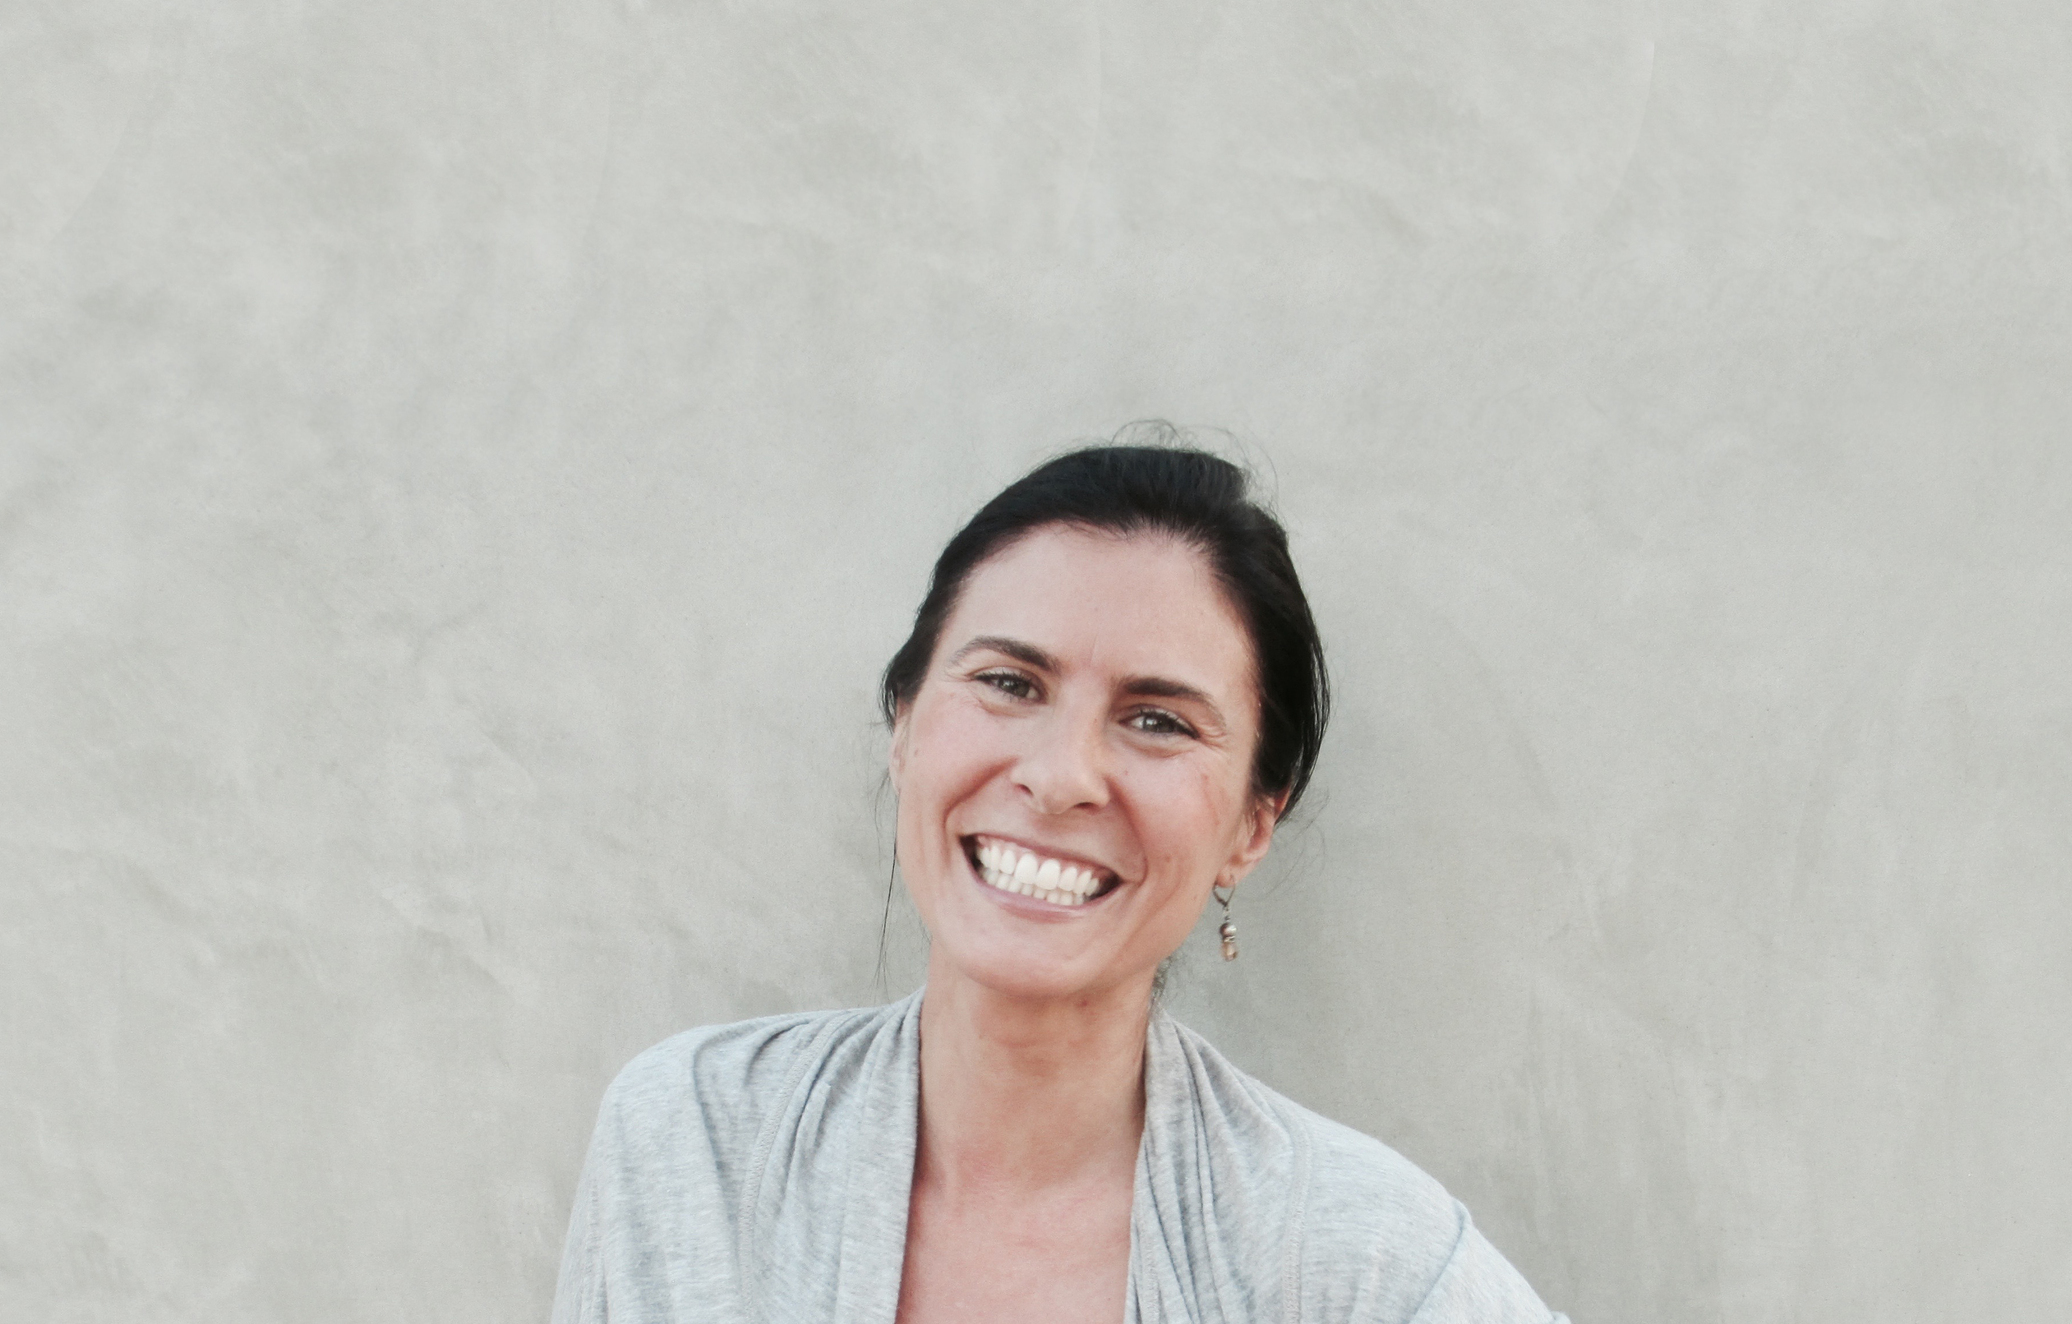 Ayurvedic practitioner, educator and counselor, Gianna offers guidance for the inward journey. Her approach is based primarily upon the 5000 year old Vedic science of mind body health, including yoga and Ayurveda, 'The Science of Life'.Gianna assists in removing the inner obstacles that prevent us from living our truth. Her approach has empowered hundreds of clients to align with their authentic path.